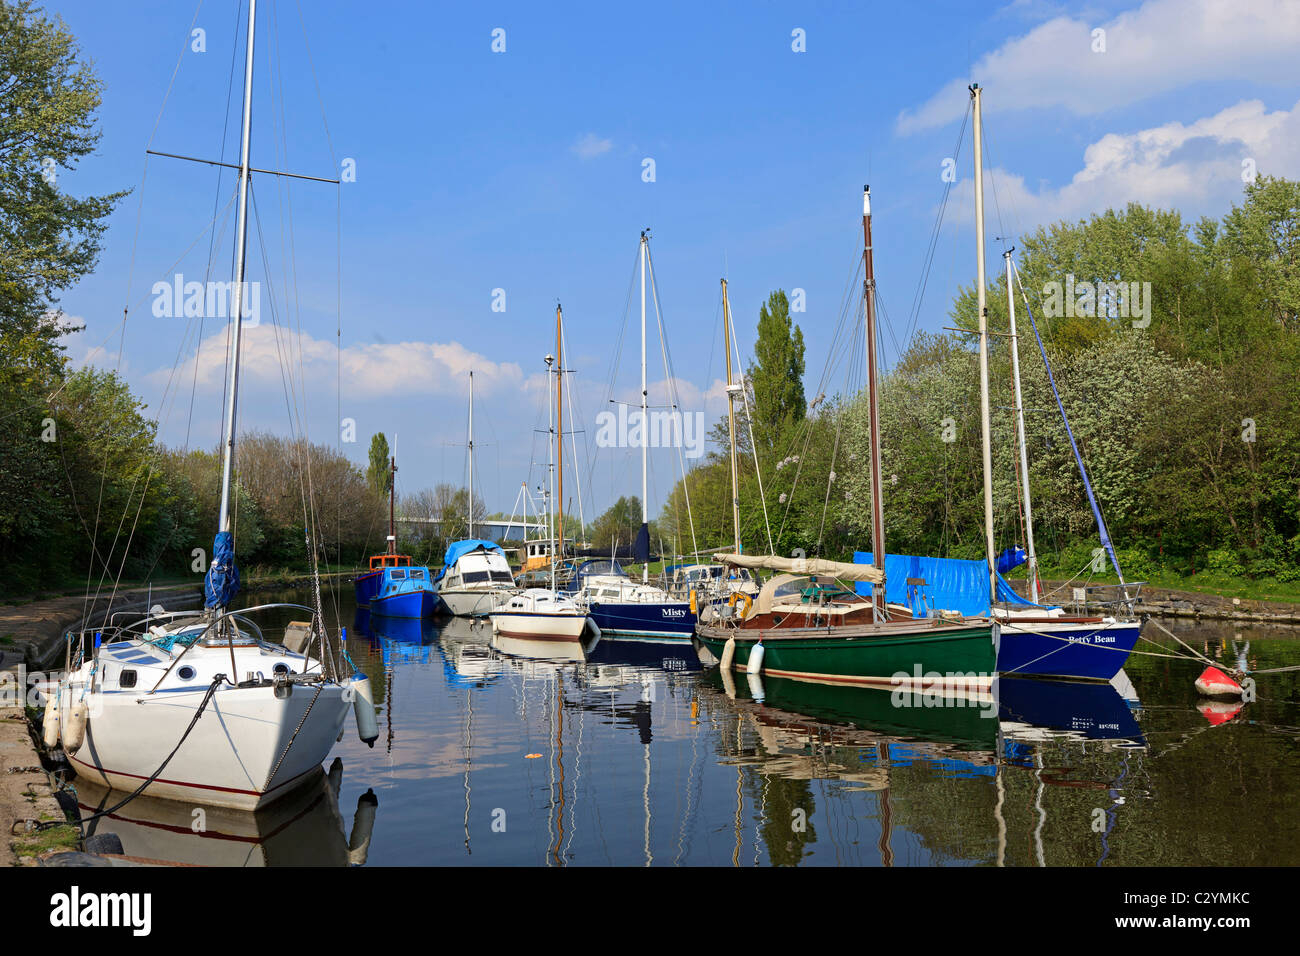 Spike Island Widnes yacht basin on the old St. Helens Sankey valley canal. - Stock Image